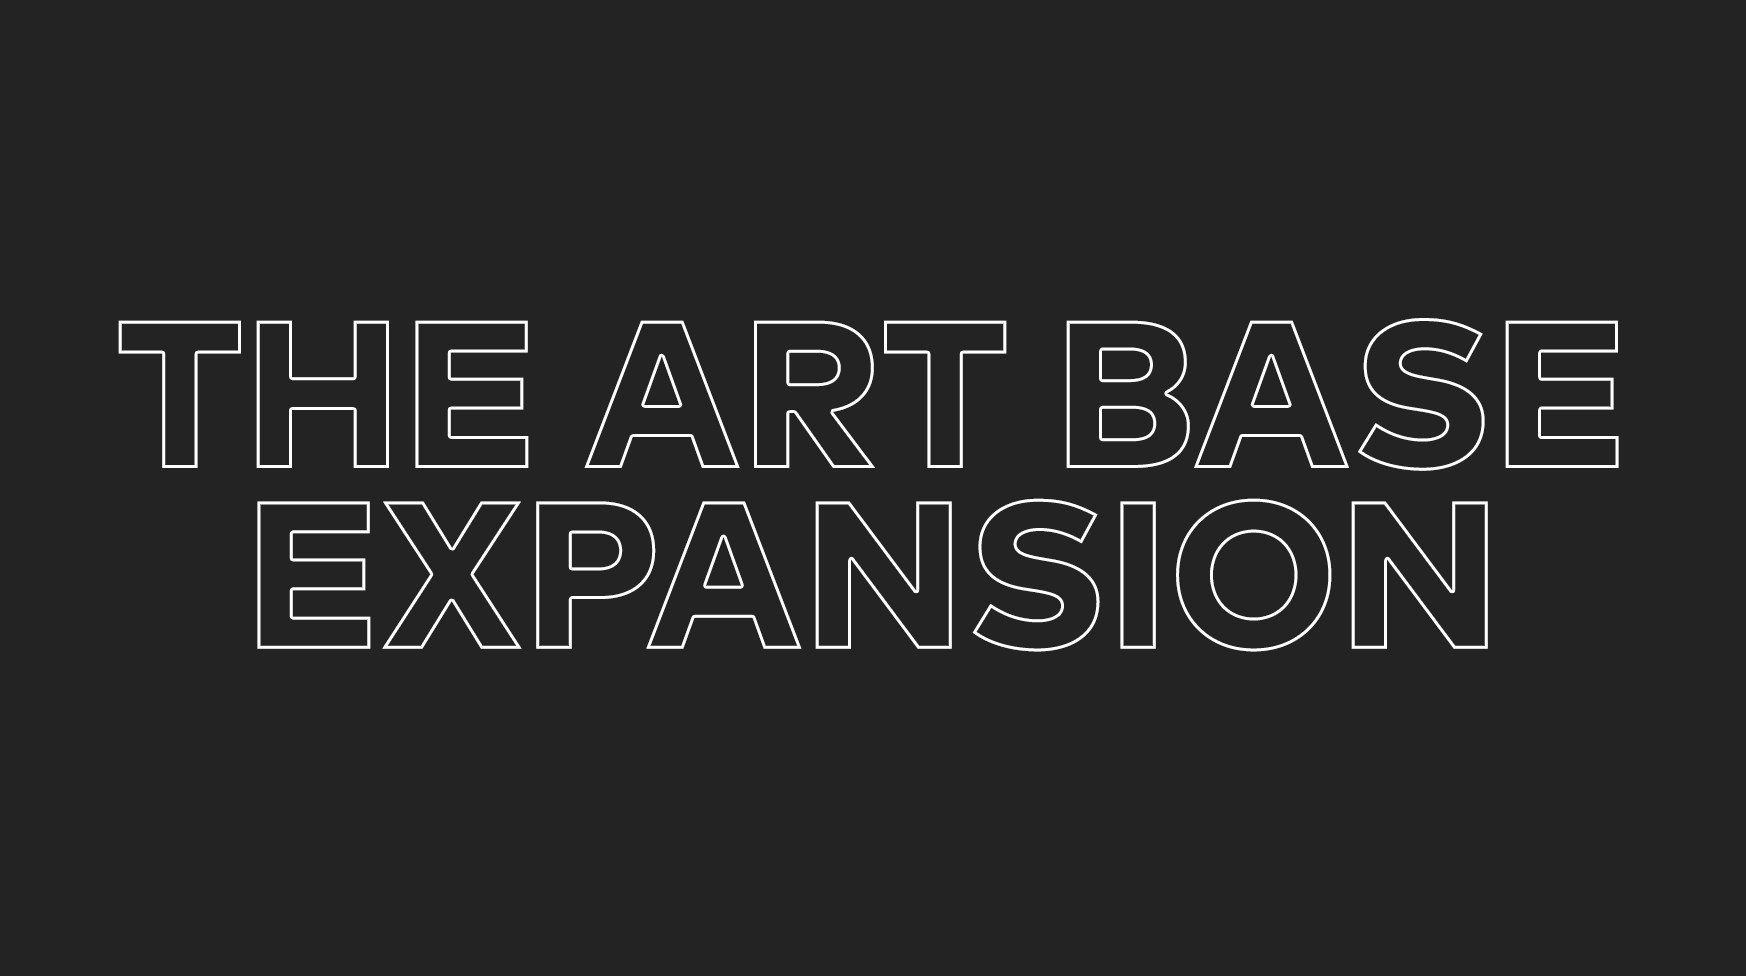 tab-expansion